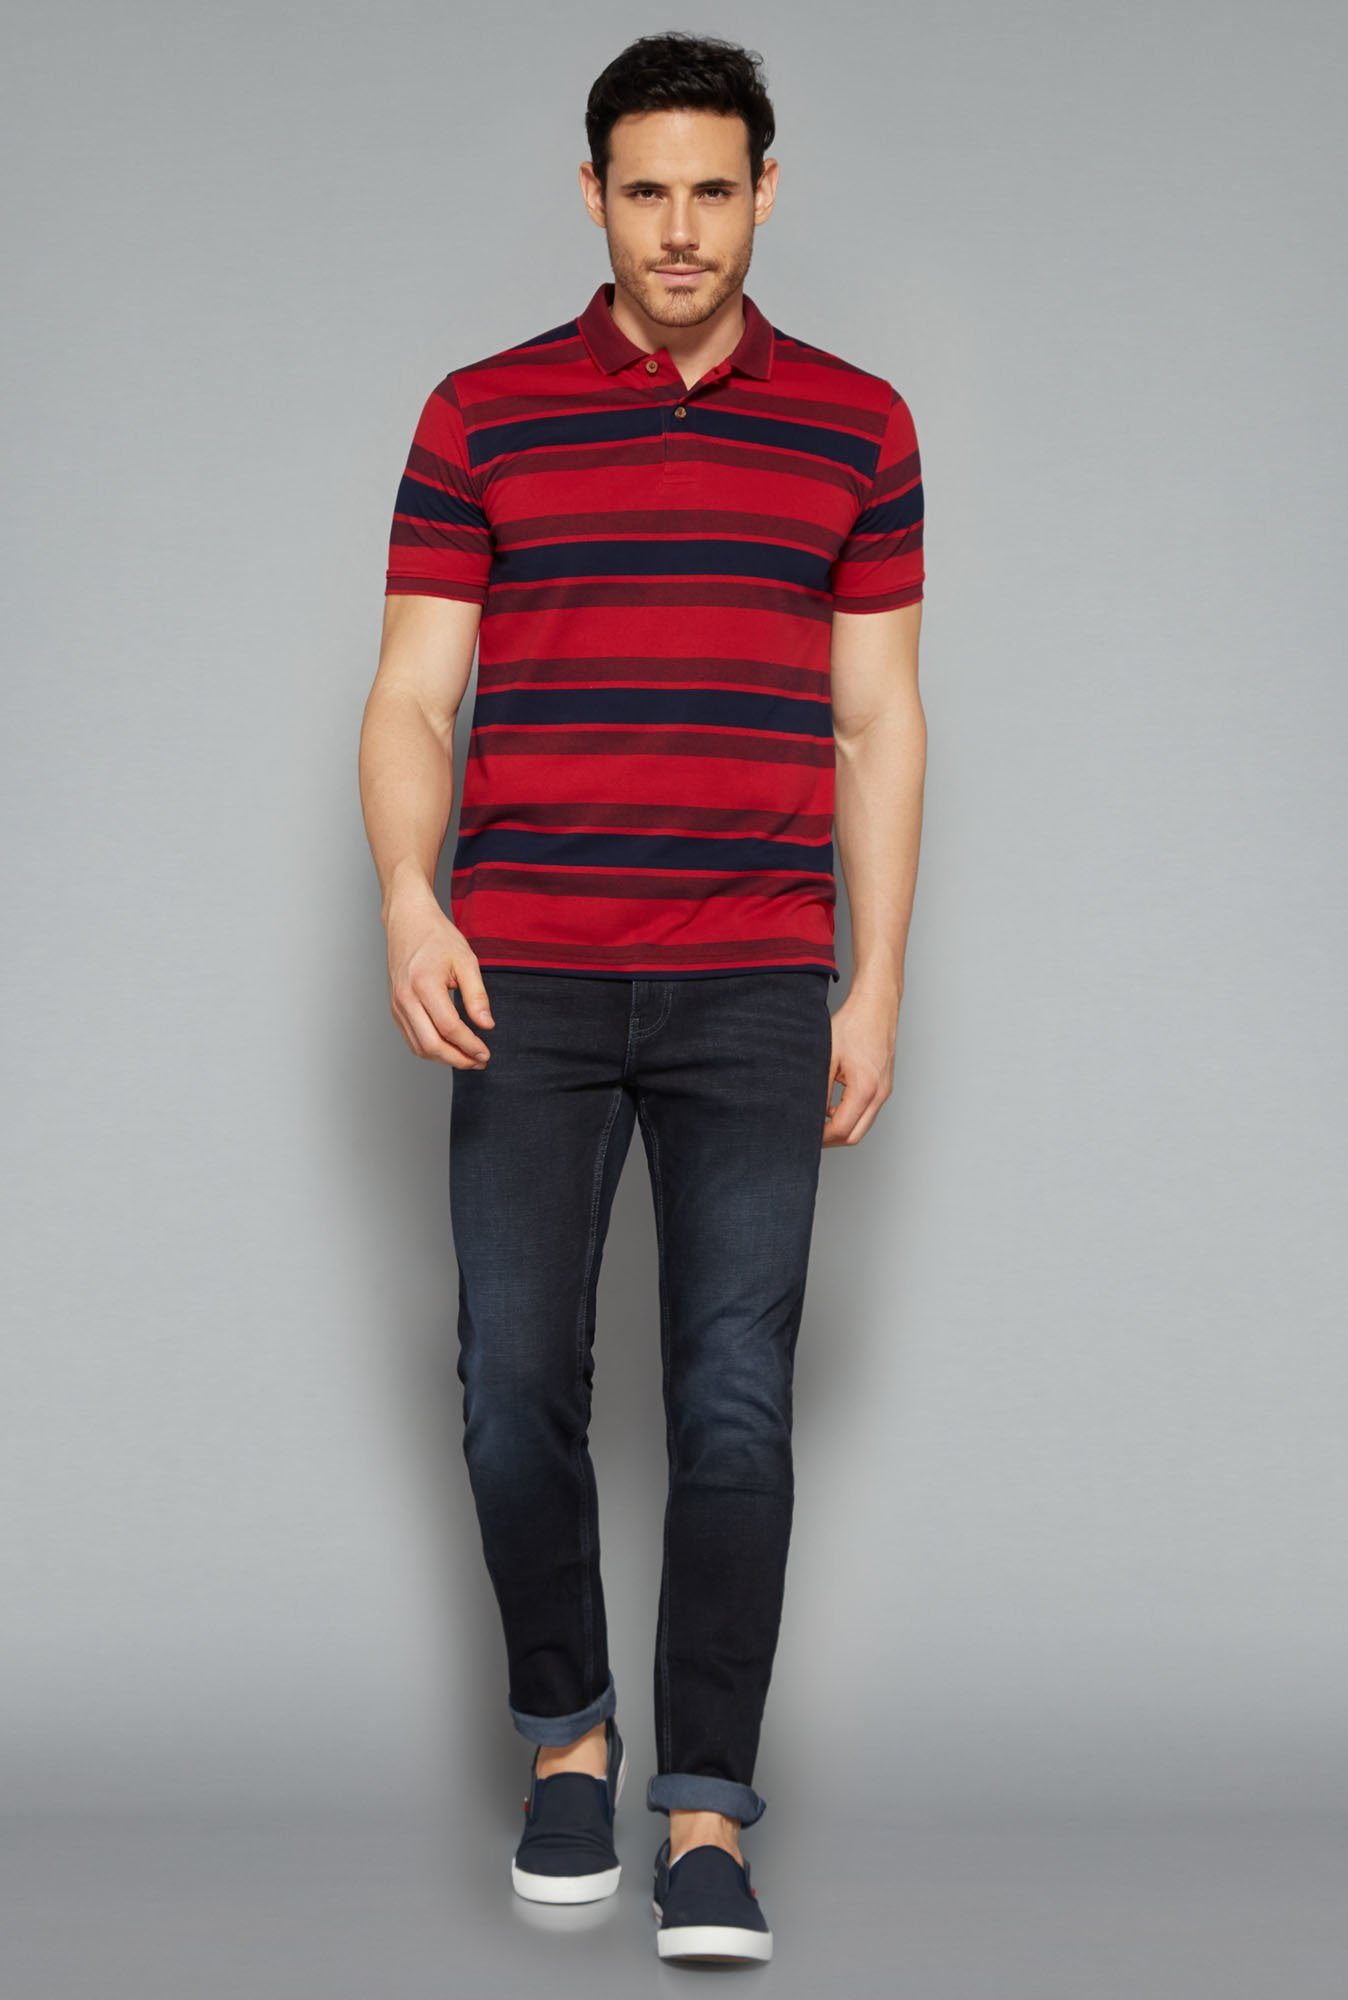 Westsport by Westside Red Polo T Shirt